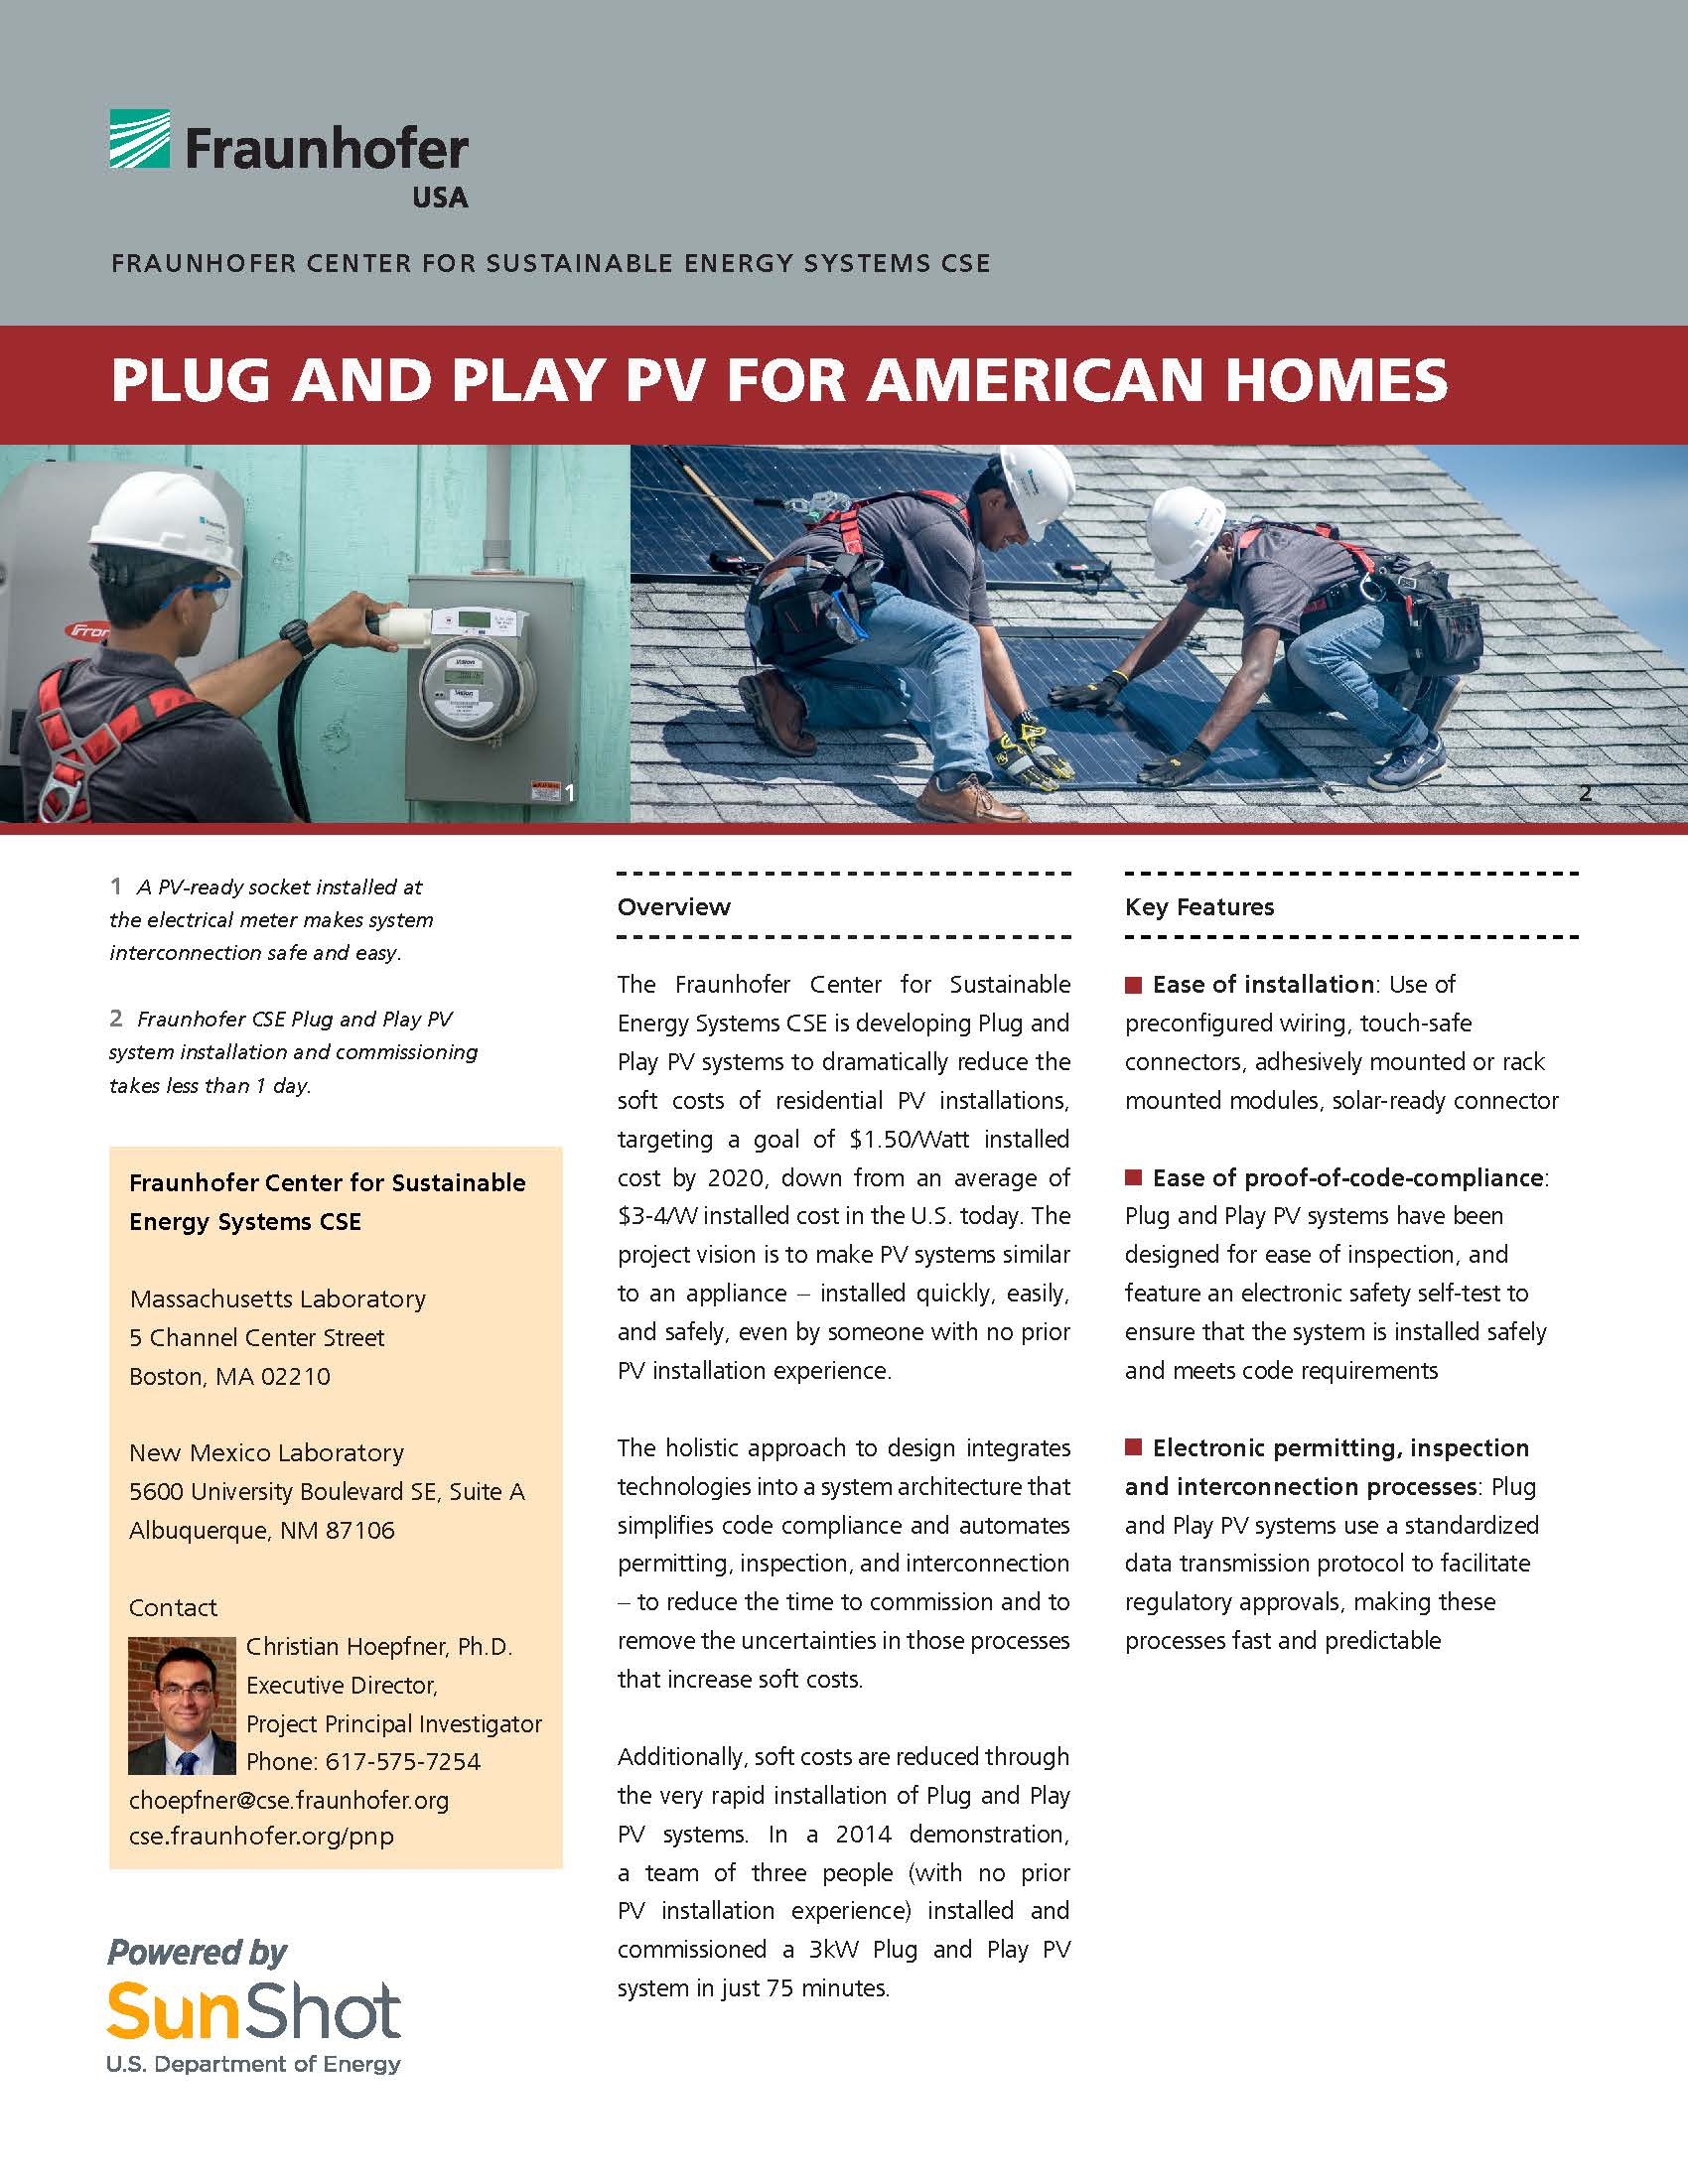 Plug and Play PV Systems for American Homes